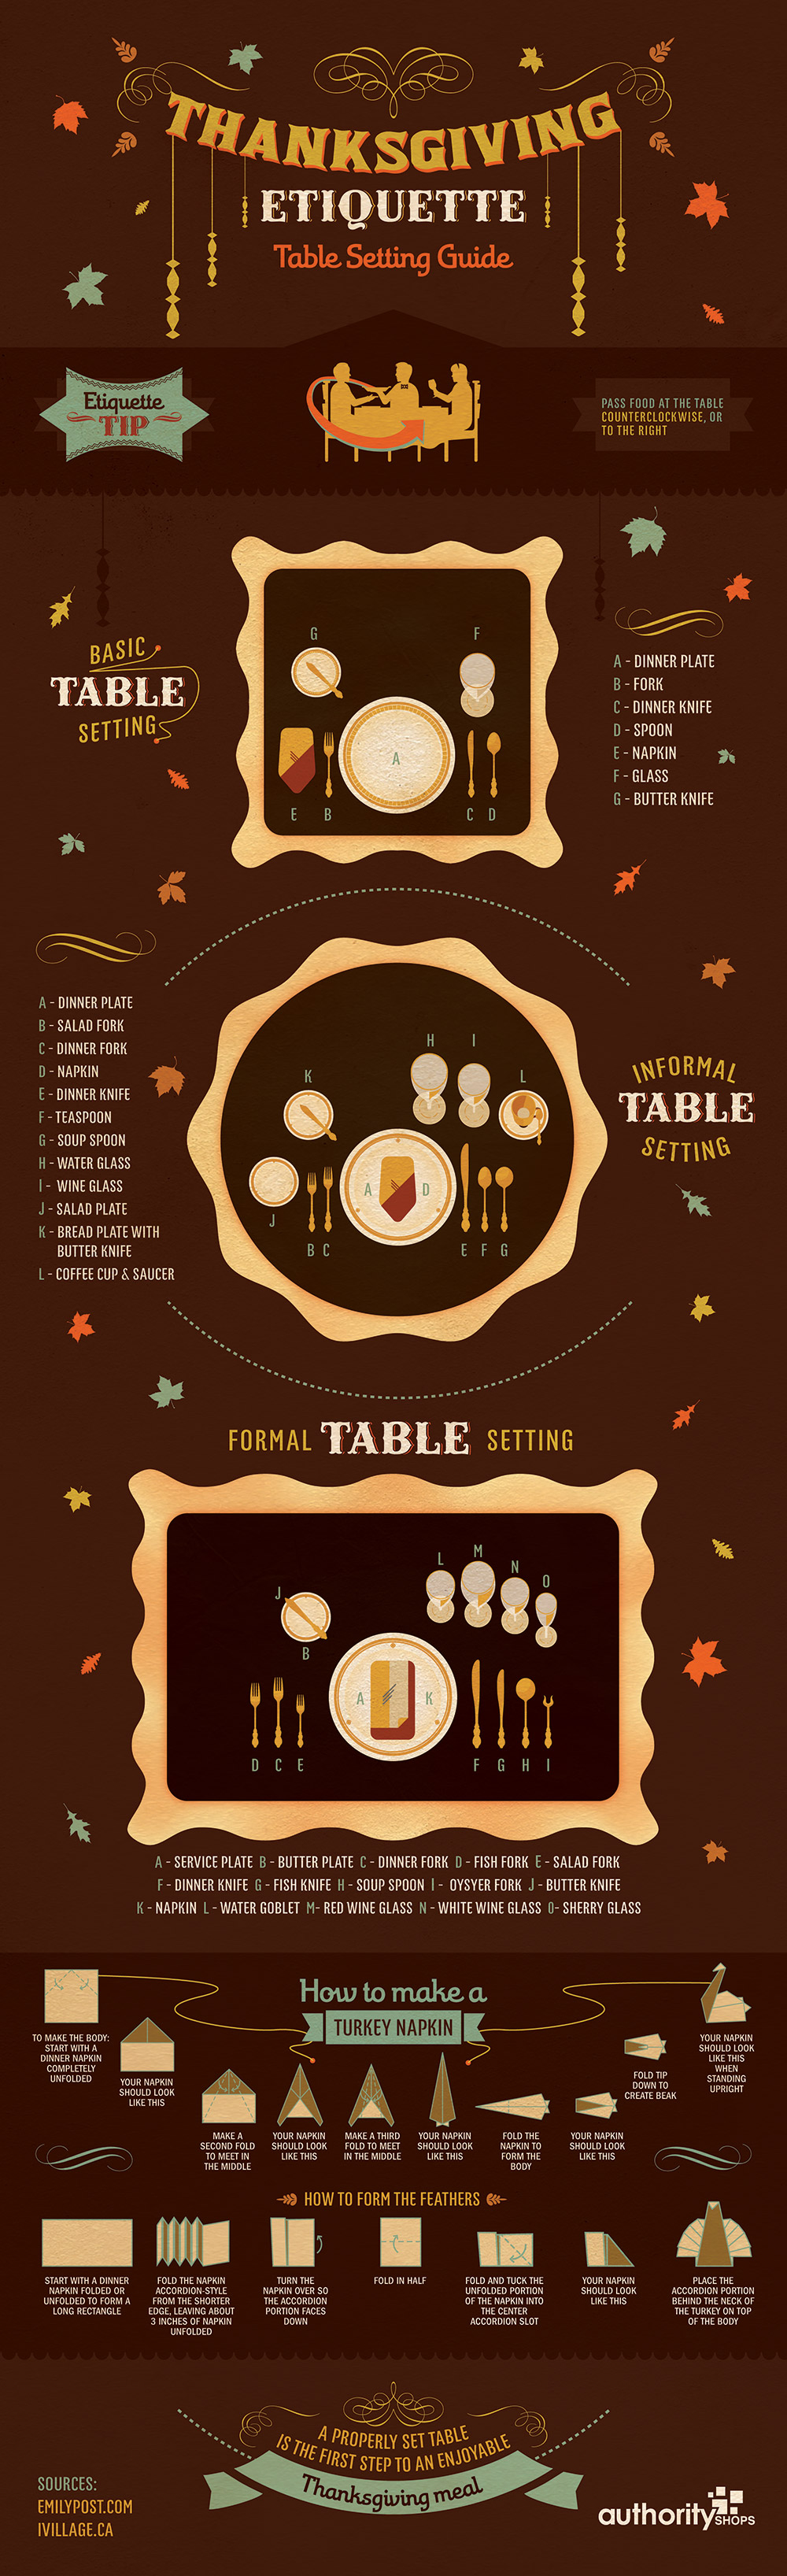 thanksgiving etiquette table setting guide infographic